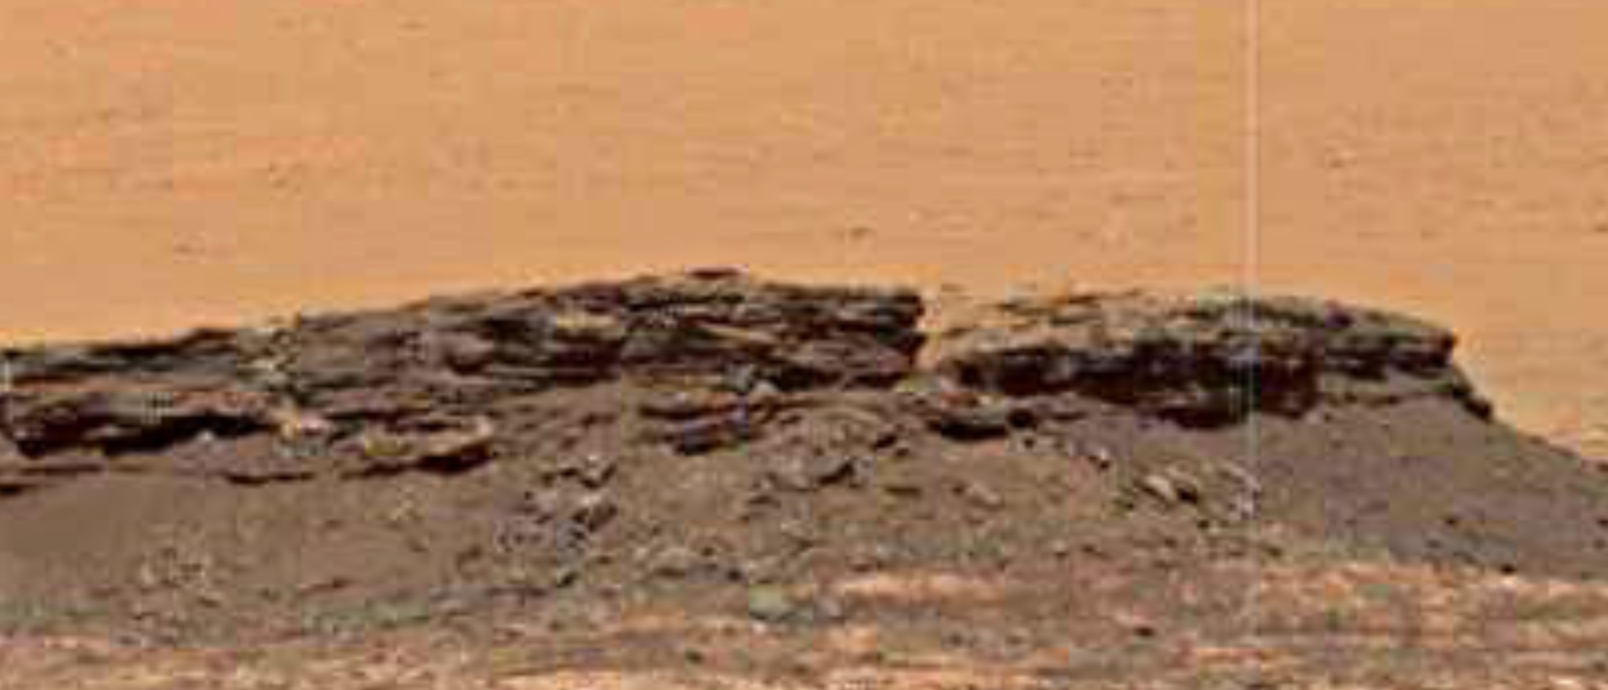 mars-sol-1507-anomaly-artifacts-15-was-life-on-mars